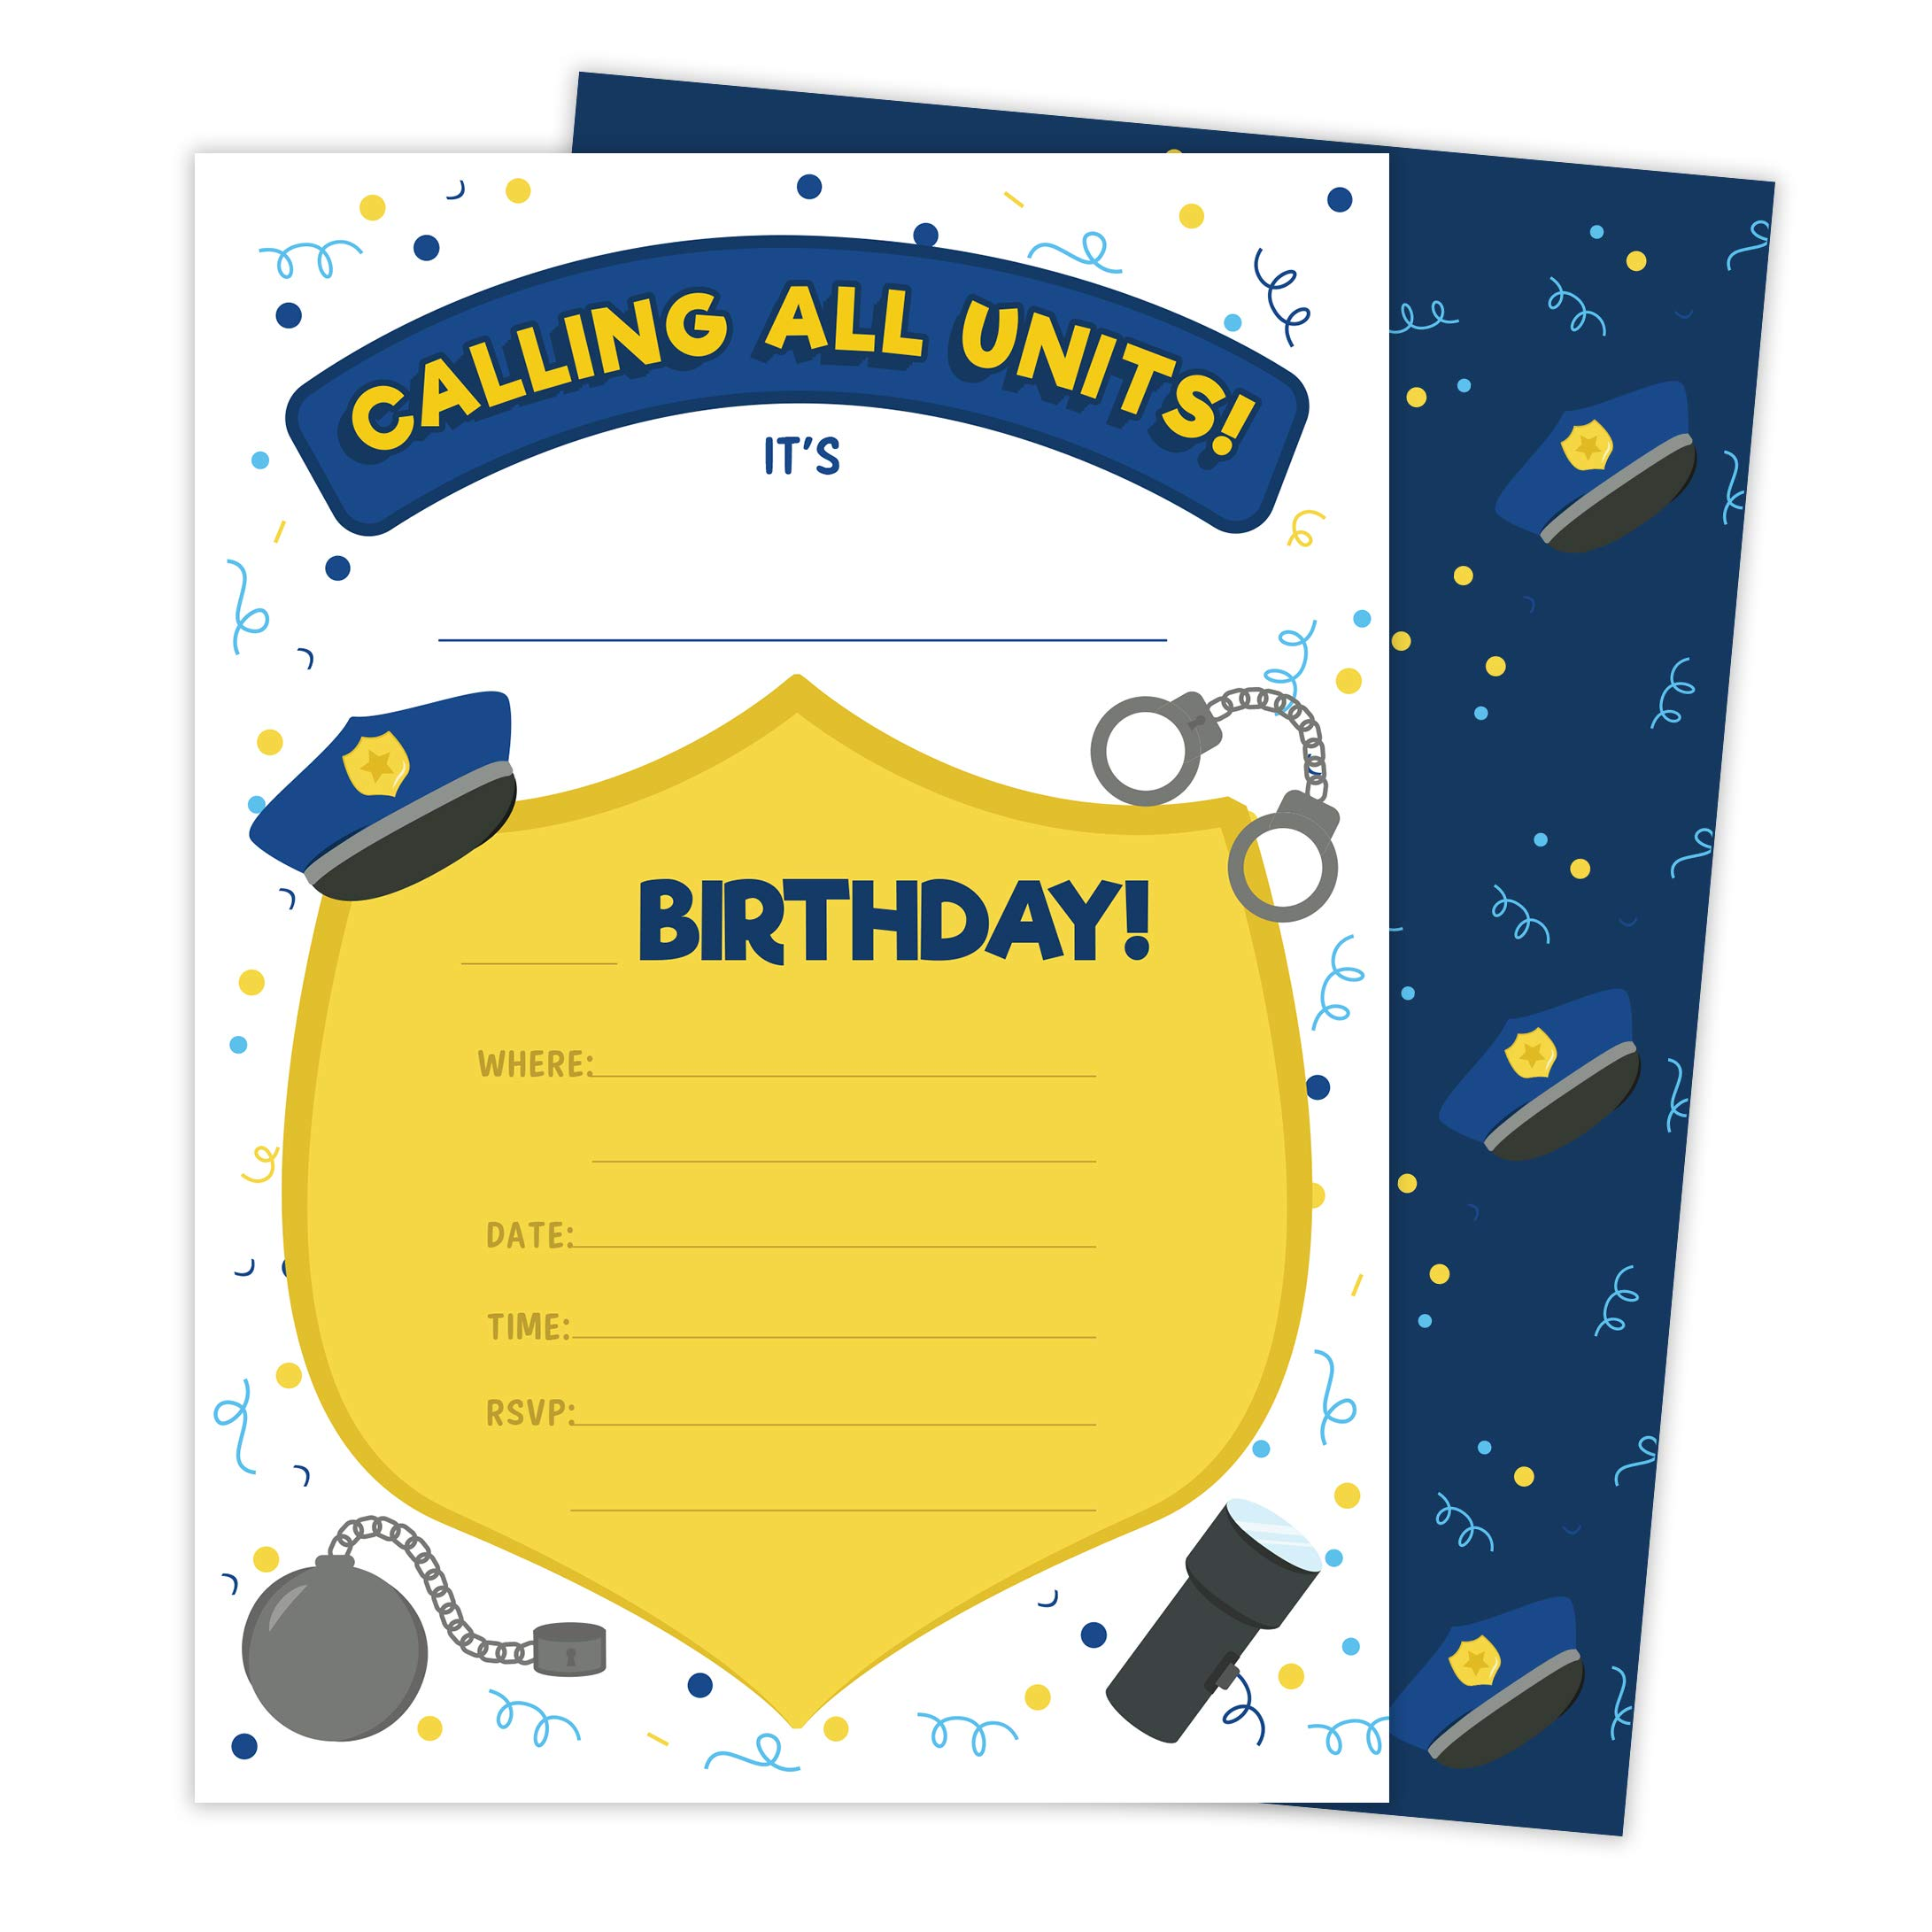 Police 2 Invitations (25 ct.) Invite Cards Happy Birthday Invitations Invite Cards With Envelopes & Seal Stickers Vinyl Girls Boys Kids Party (25ct) by Desert Cactus (Image #1)